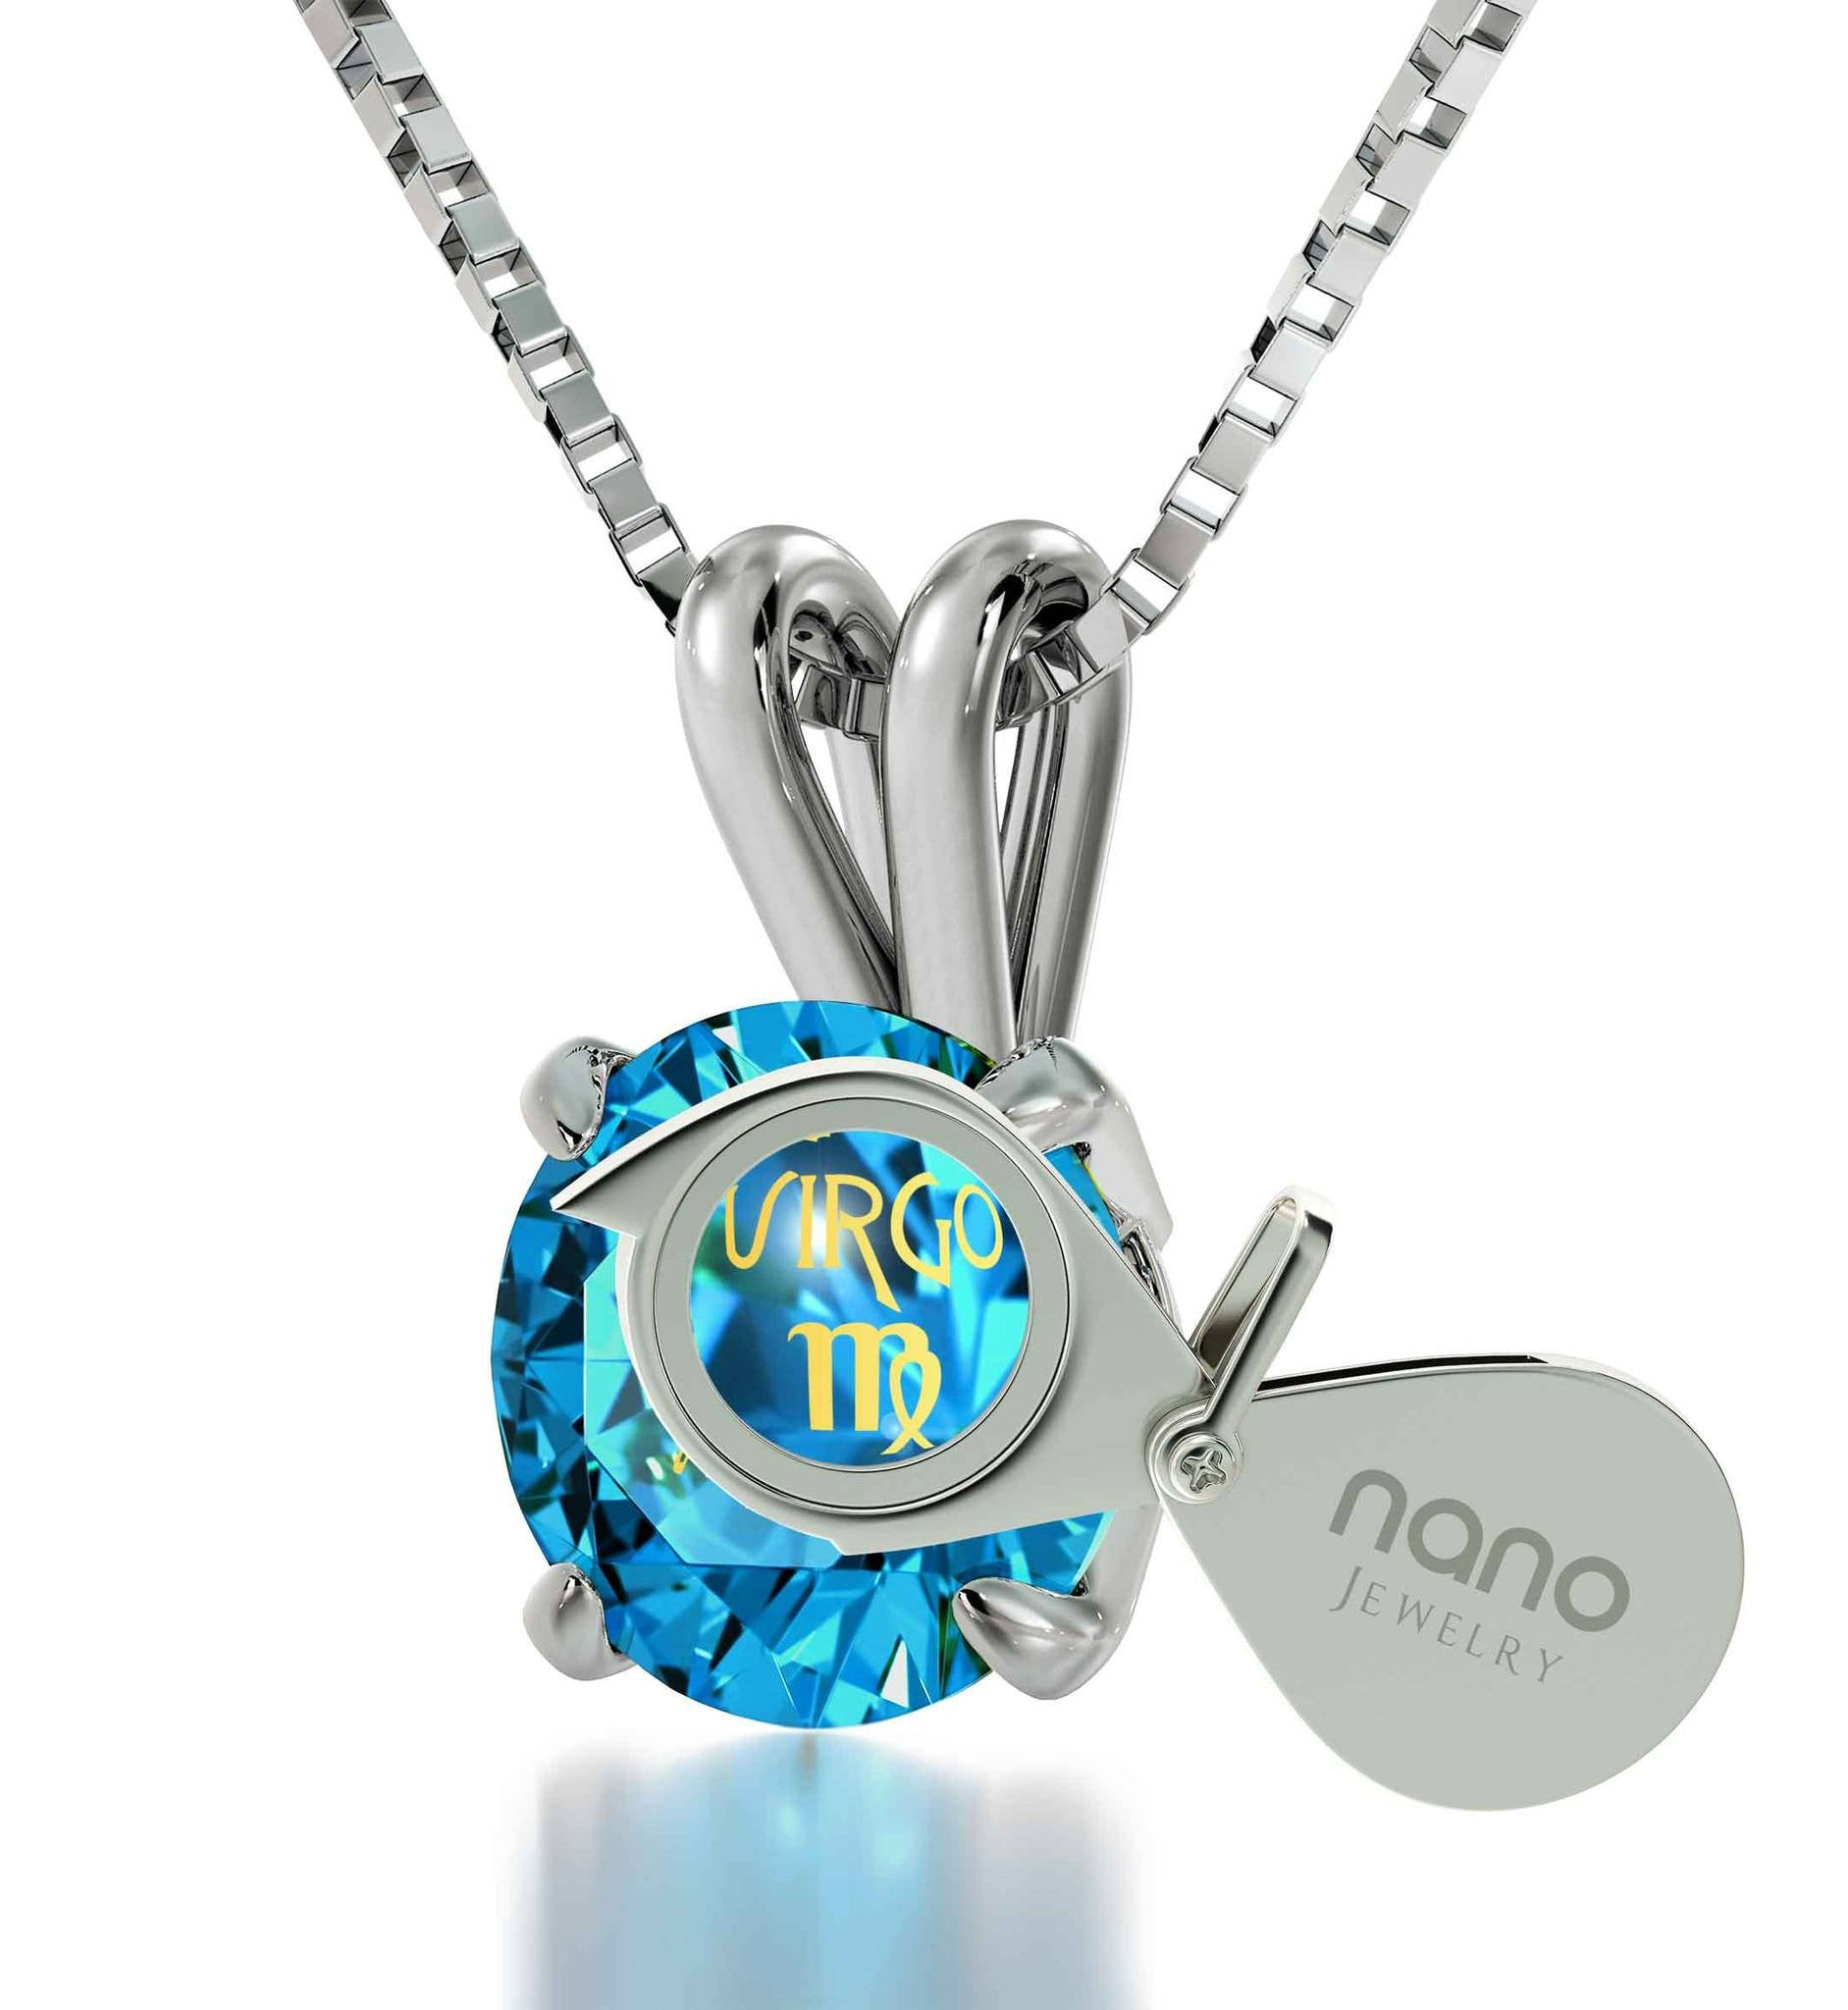 Christmas Present Ideas For Girls Virgo Sign Engraved On Blue Topaz Jewellery Cool